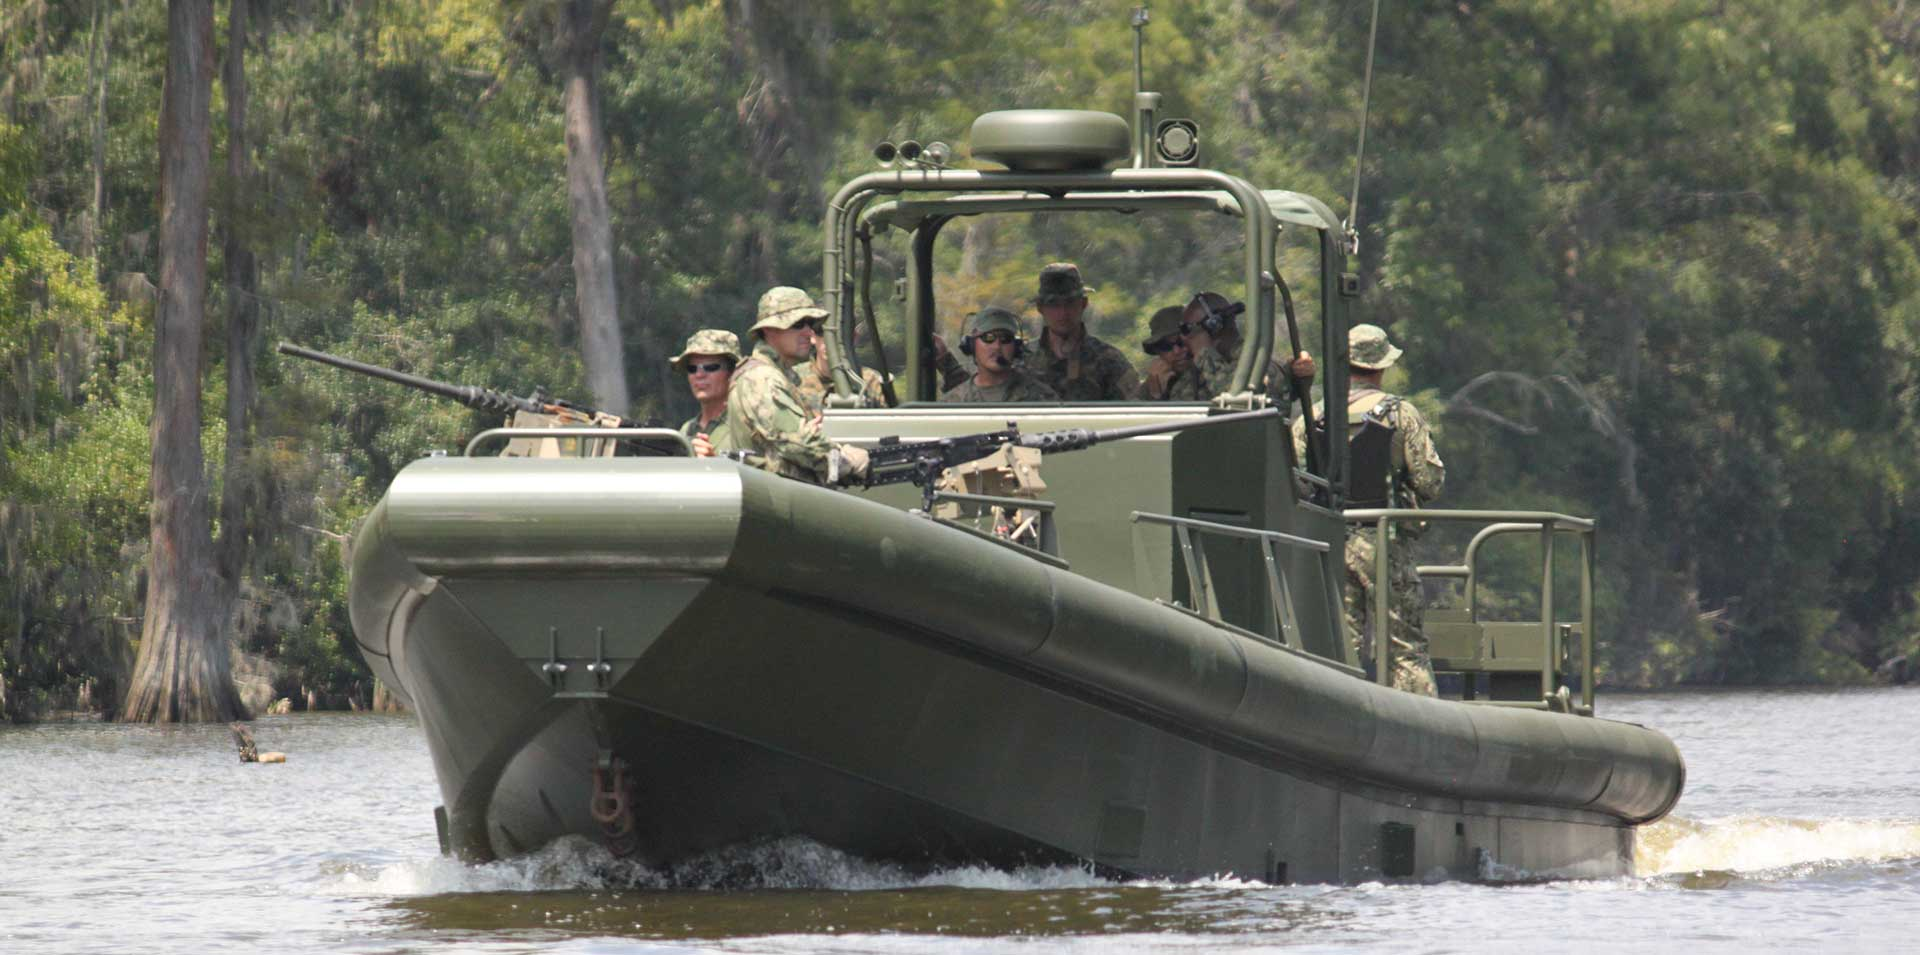 Silver Ships riverine patrol boat with soldiers and weapon mounts